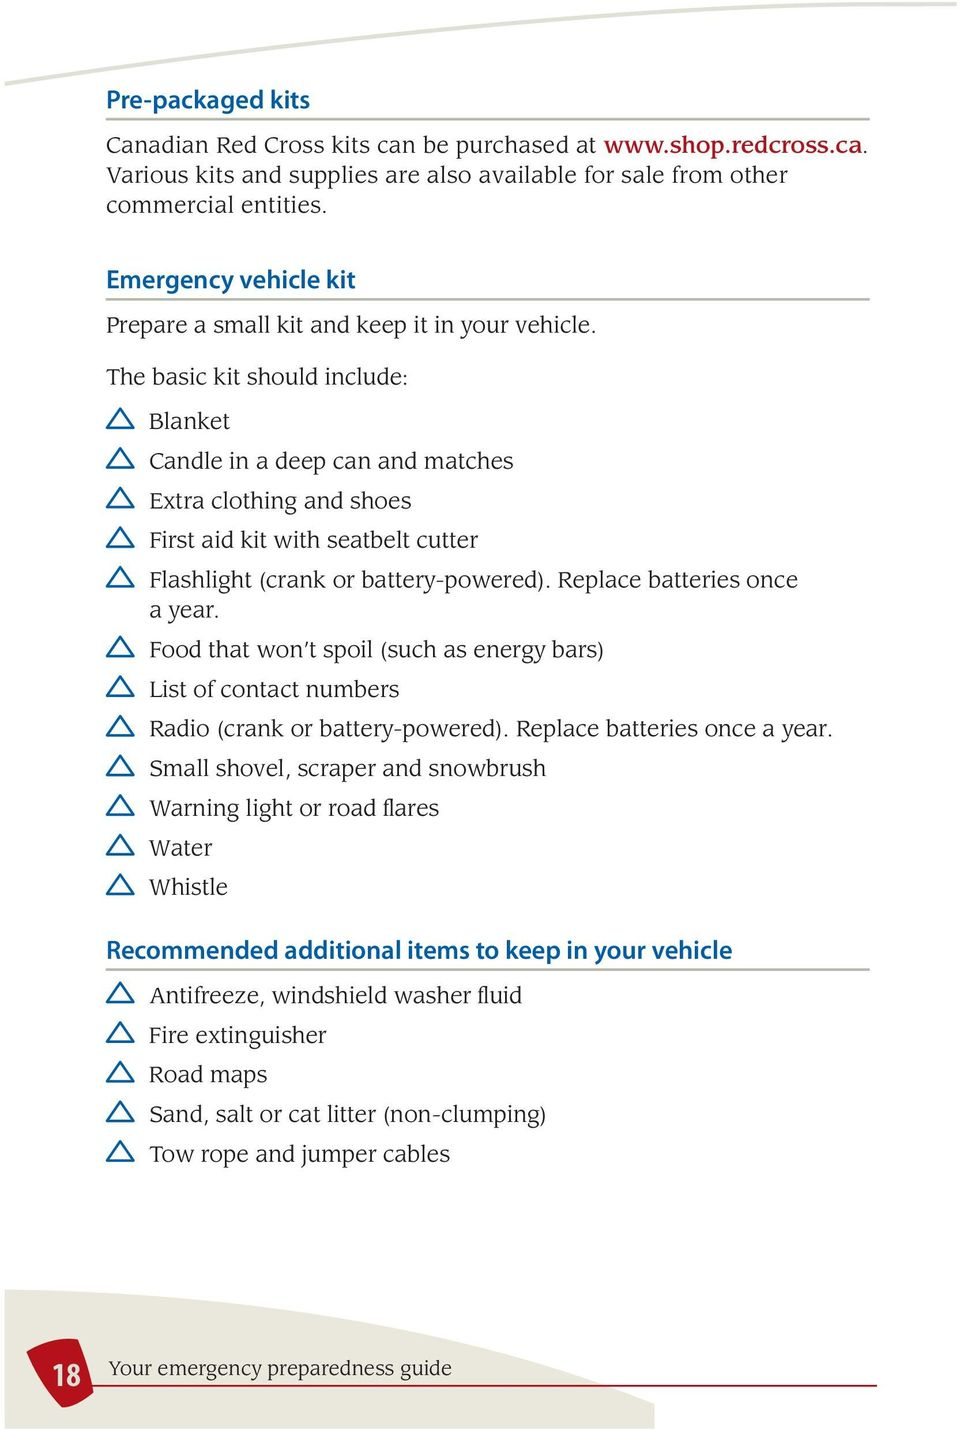 The basic kit should include: Blanket Candle in a deep can and matches Extra clothing and shoes First aid kit with seatbelt cutter Flashlight (crank or battery-powered). Replace batteries once a year.